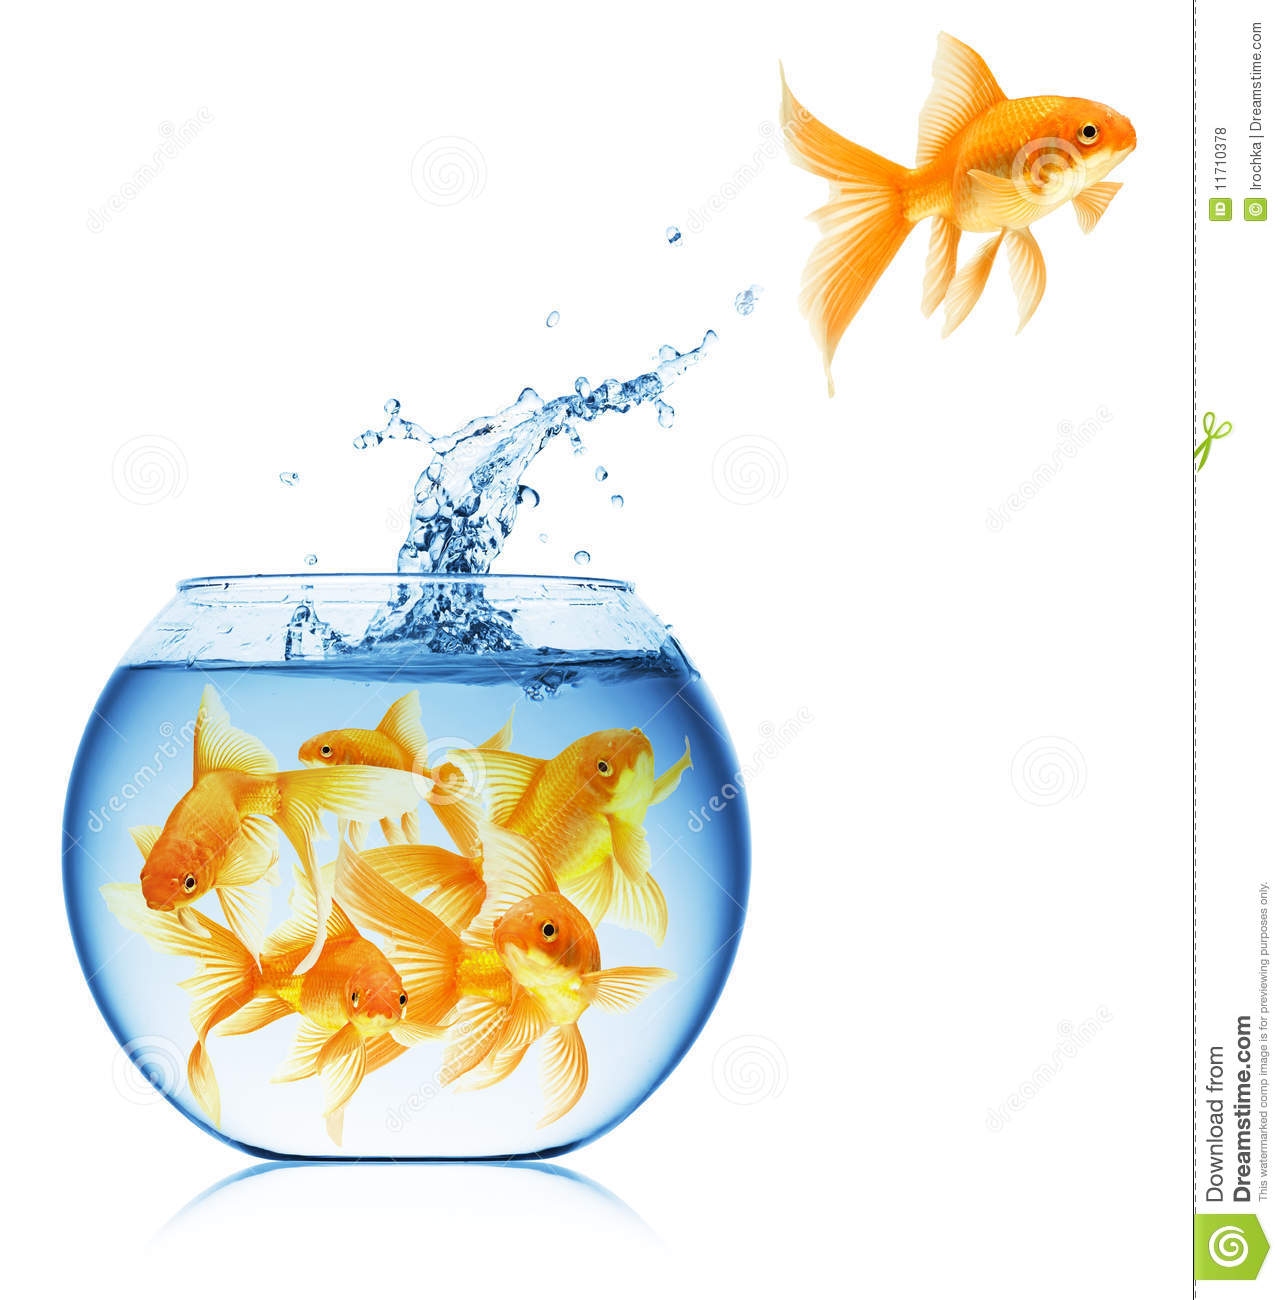 Close up view of fish bowl isolated royalty free stock for Best fish for fish bowl